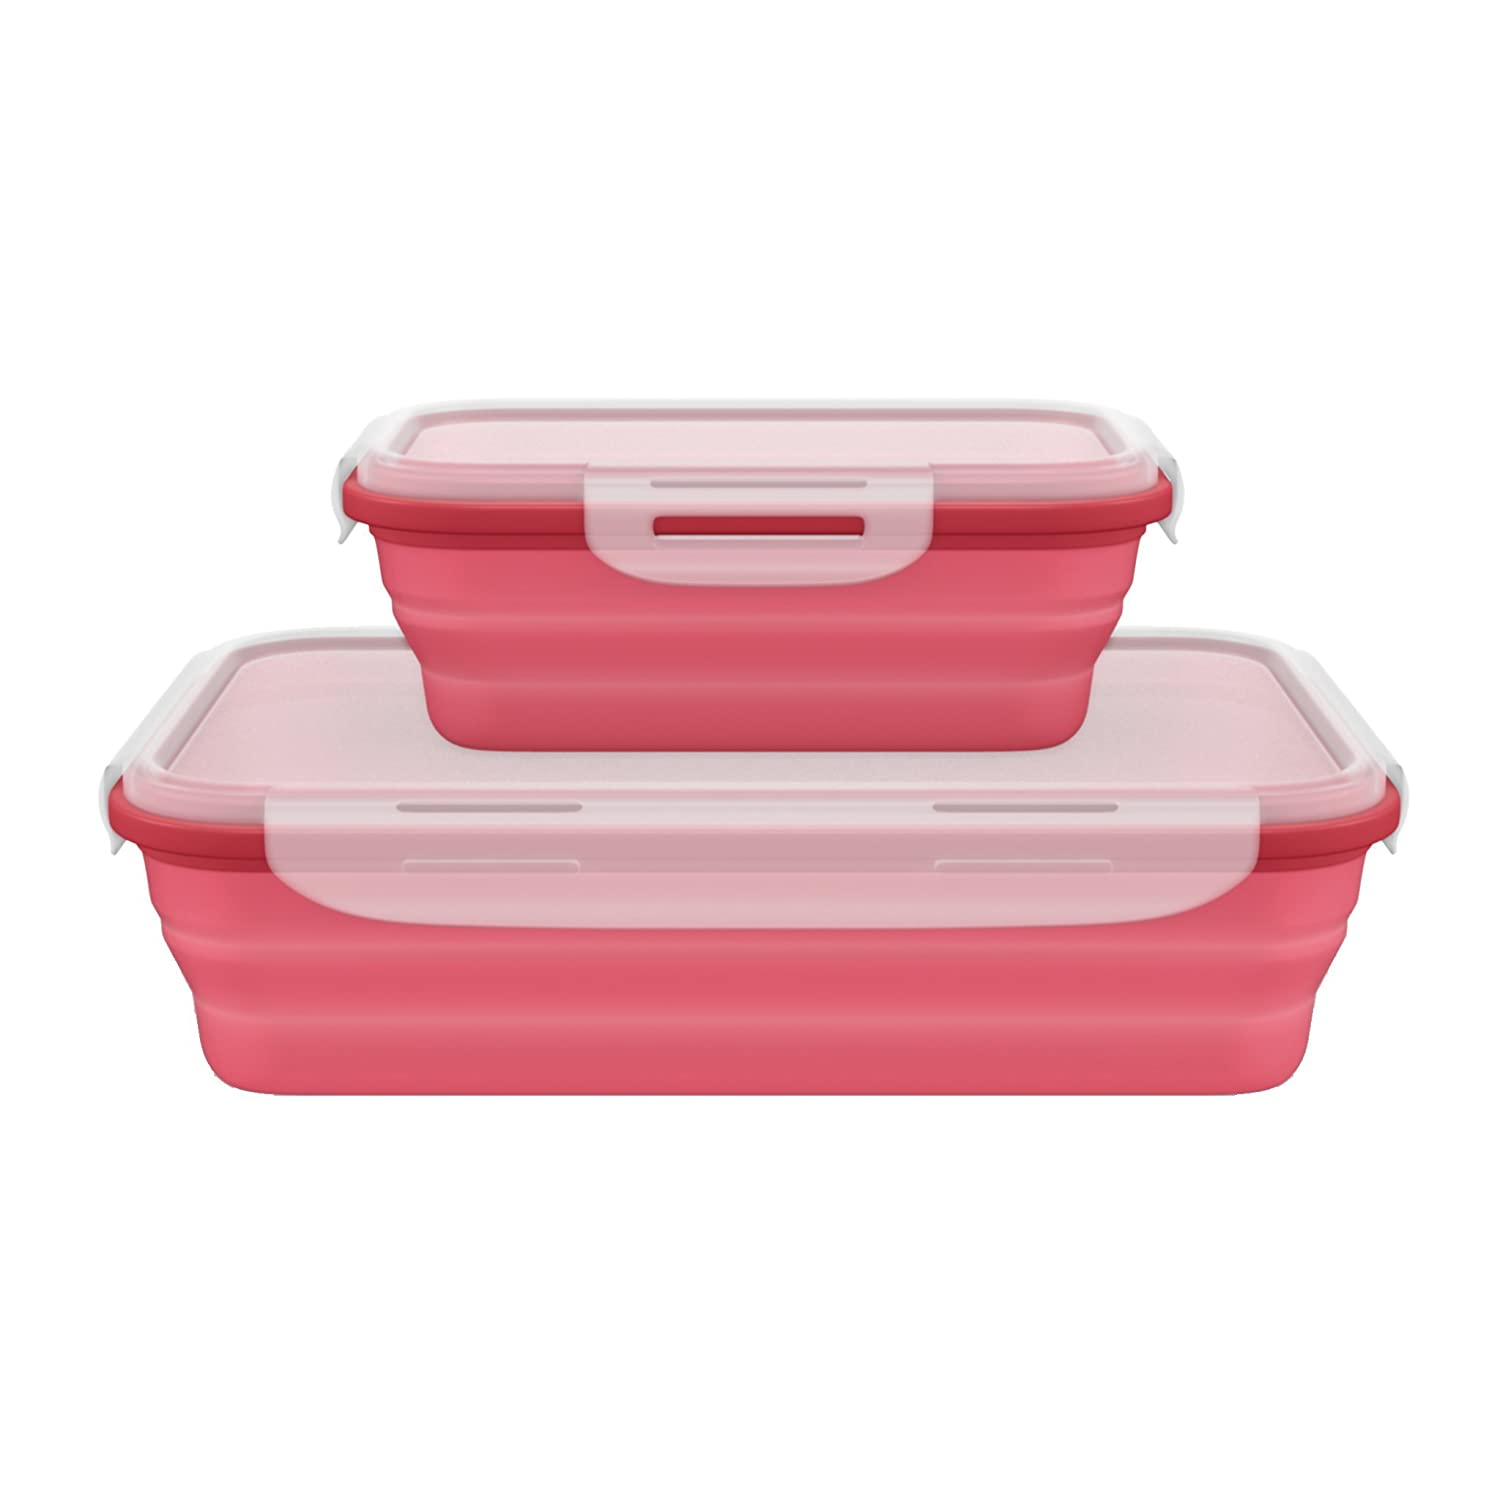 Amazon.com Leakproof BPA Free Silicone Collapsible Food Containers with Lock Lids Set of 2. Excellent Travel Containers with Lids for Office Motorhome ...  sc 1 st  Amazon.com & Amazon.com: Leakproof BPA Free Silicone Collapsible Food ...